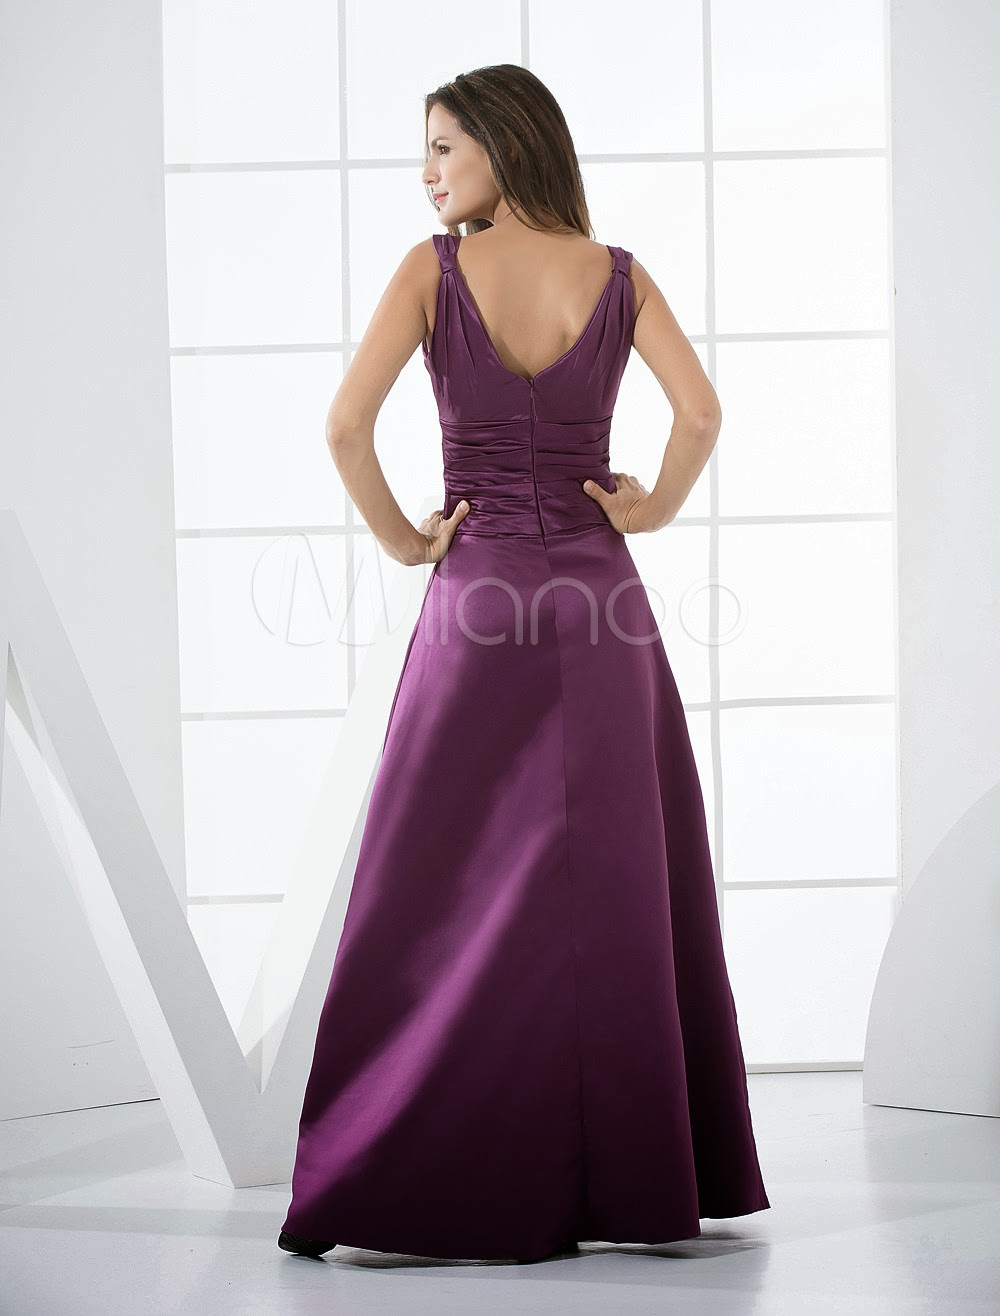 China,Wholesale,Dresses,Satin,Evening Gown